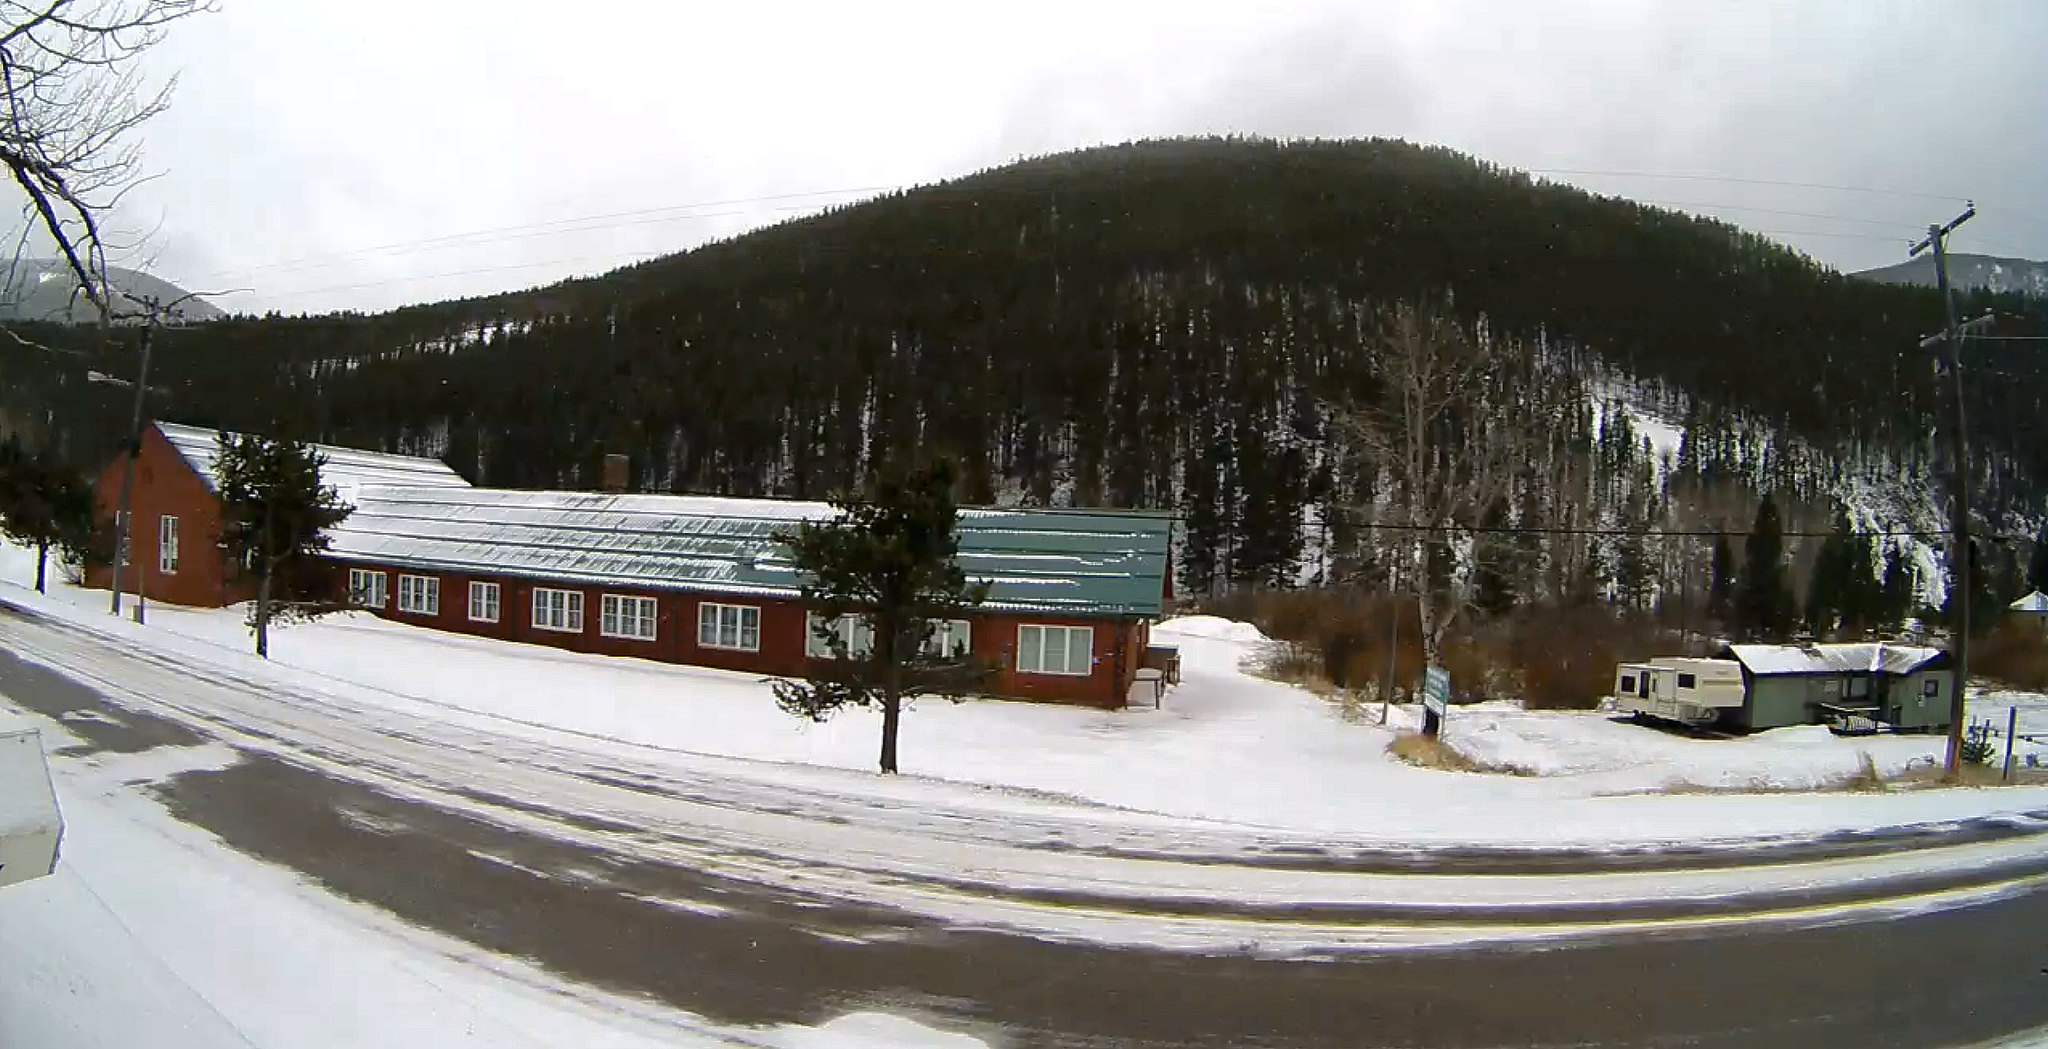 Webcam located on the middle of Neihart, MT looking South East with a view of Highway 89.